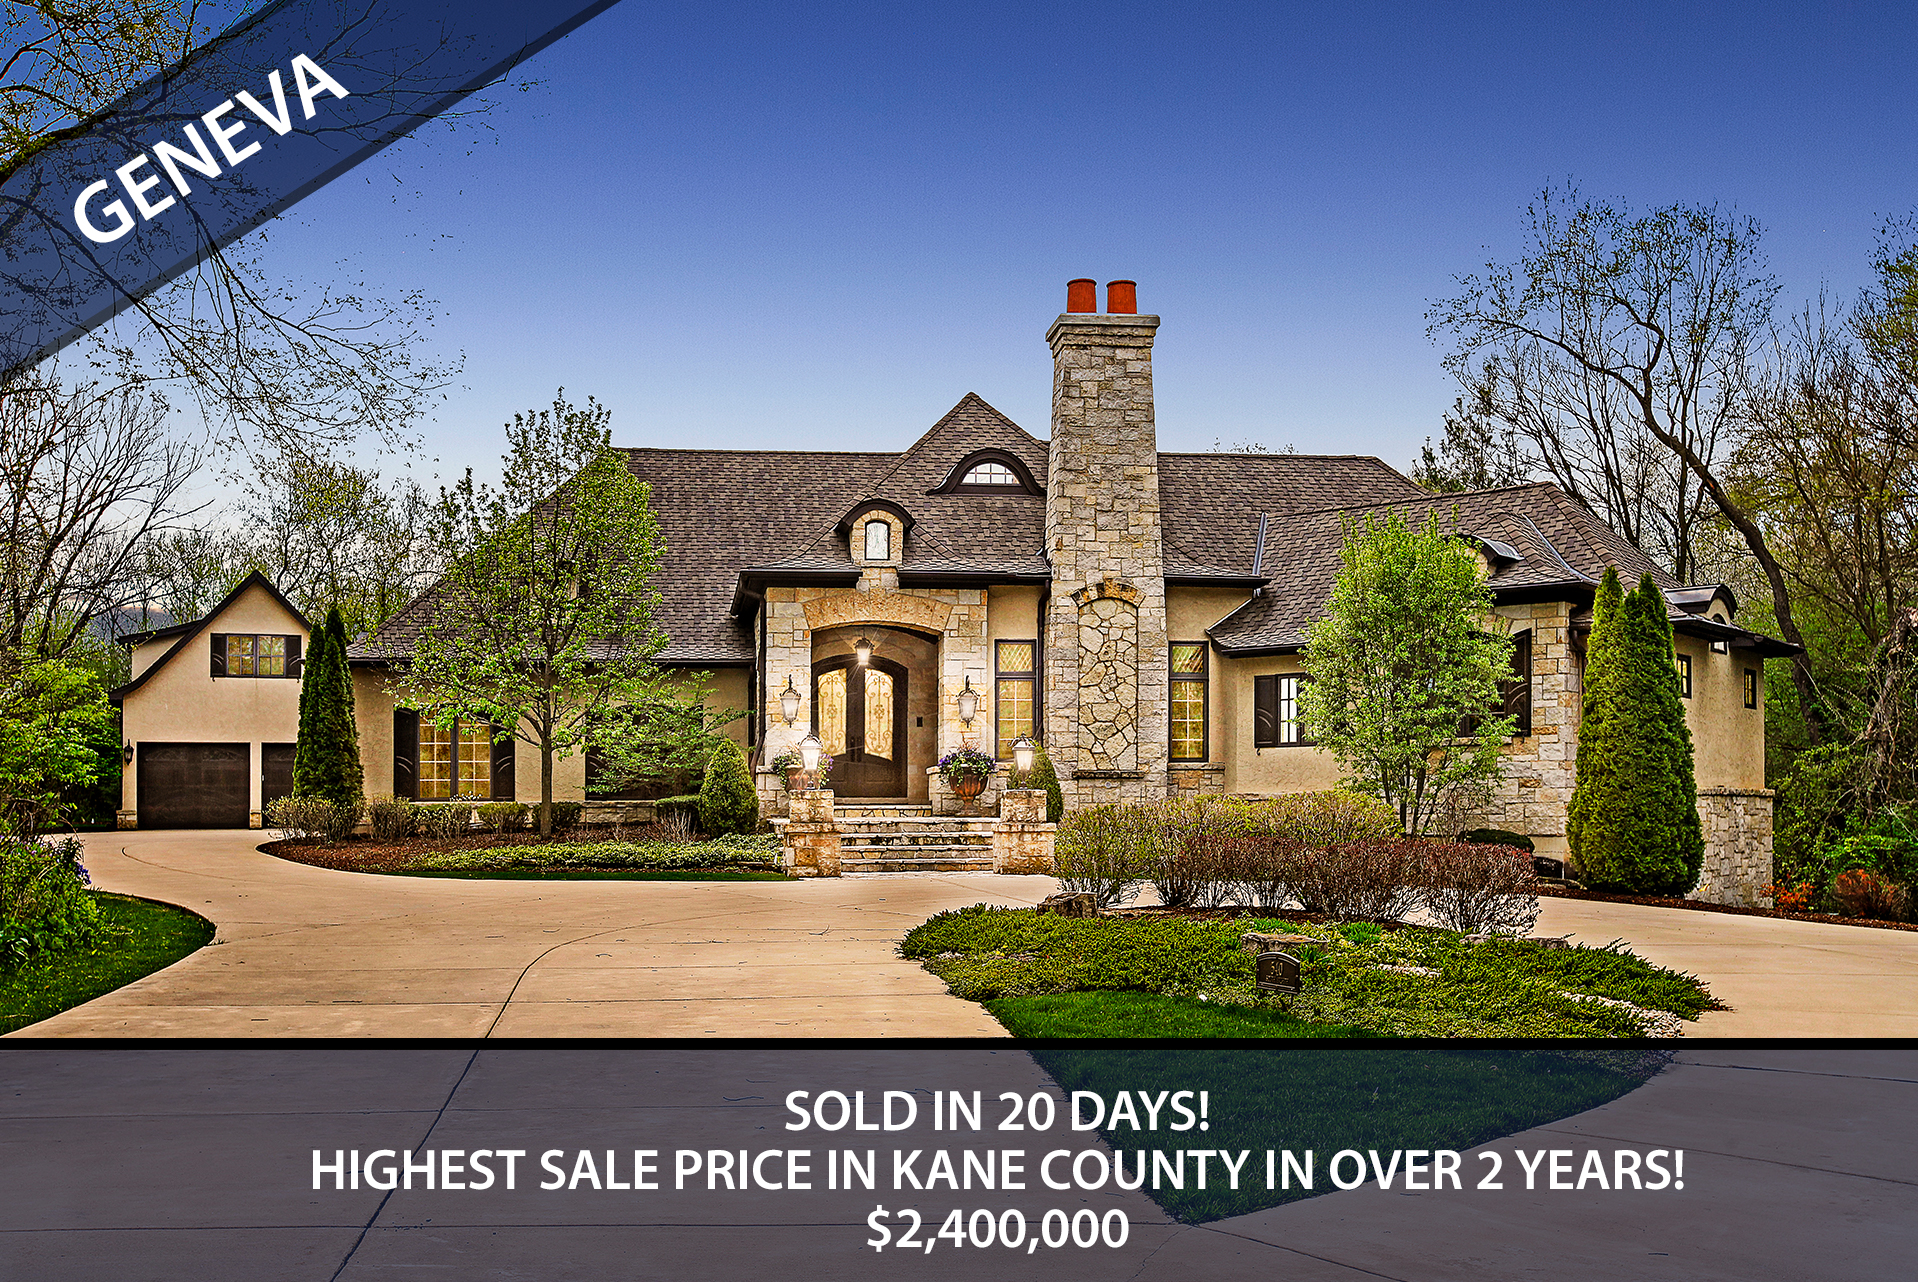 Click here to view one of our recent sales